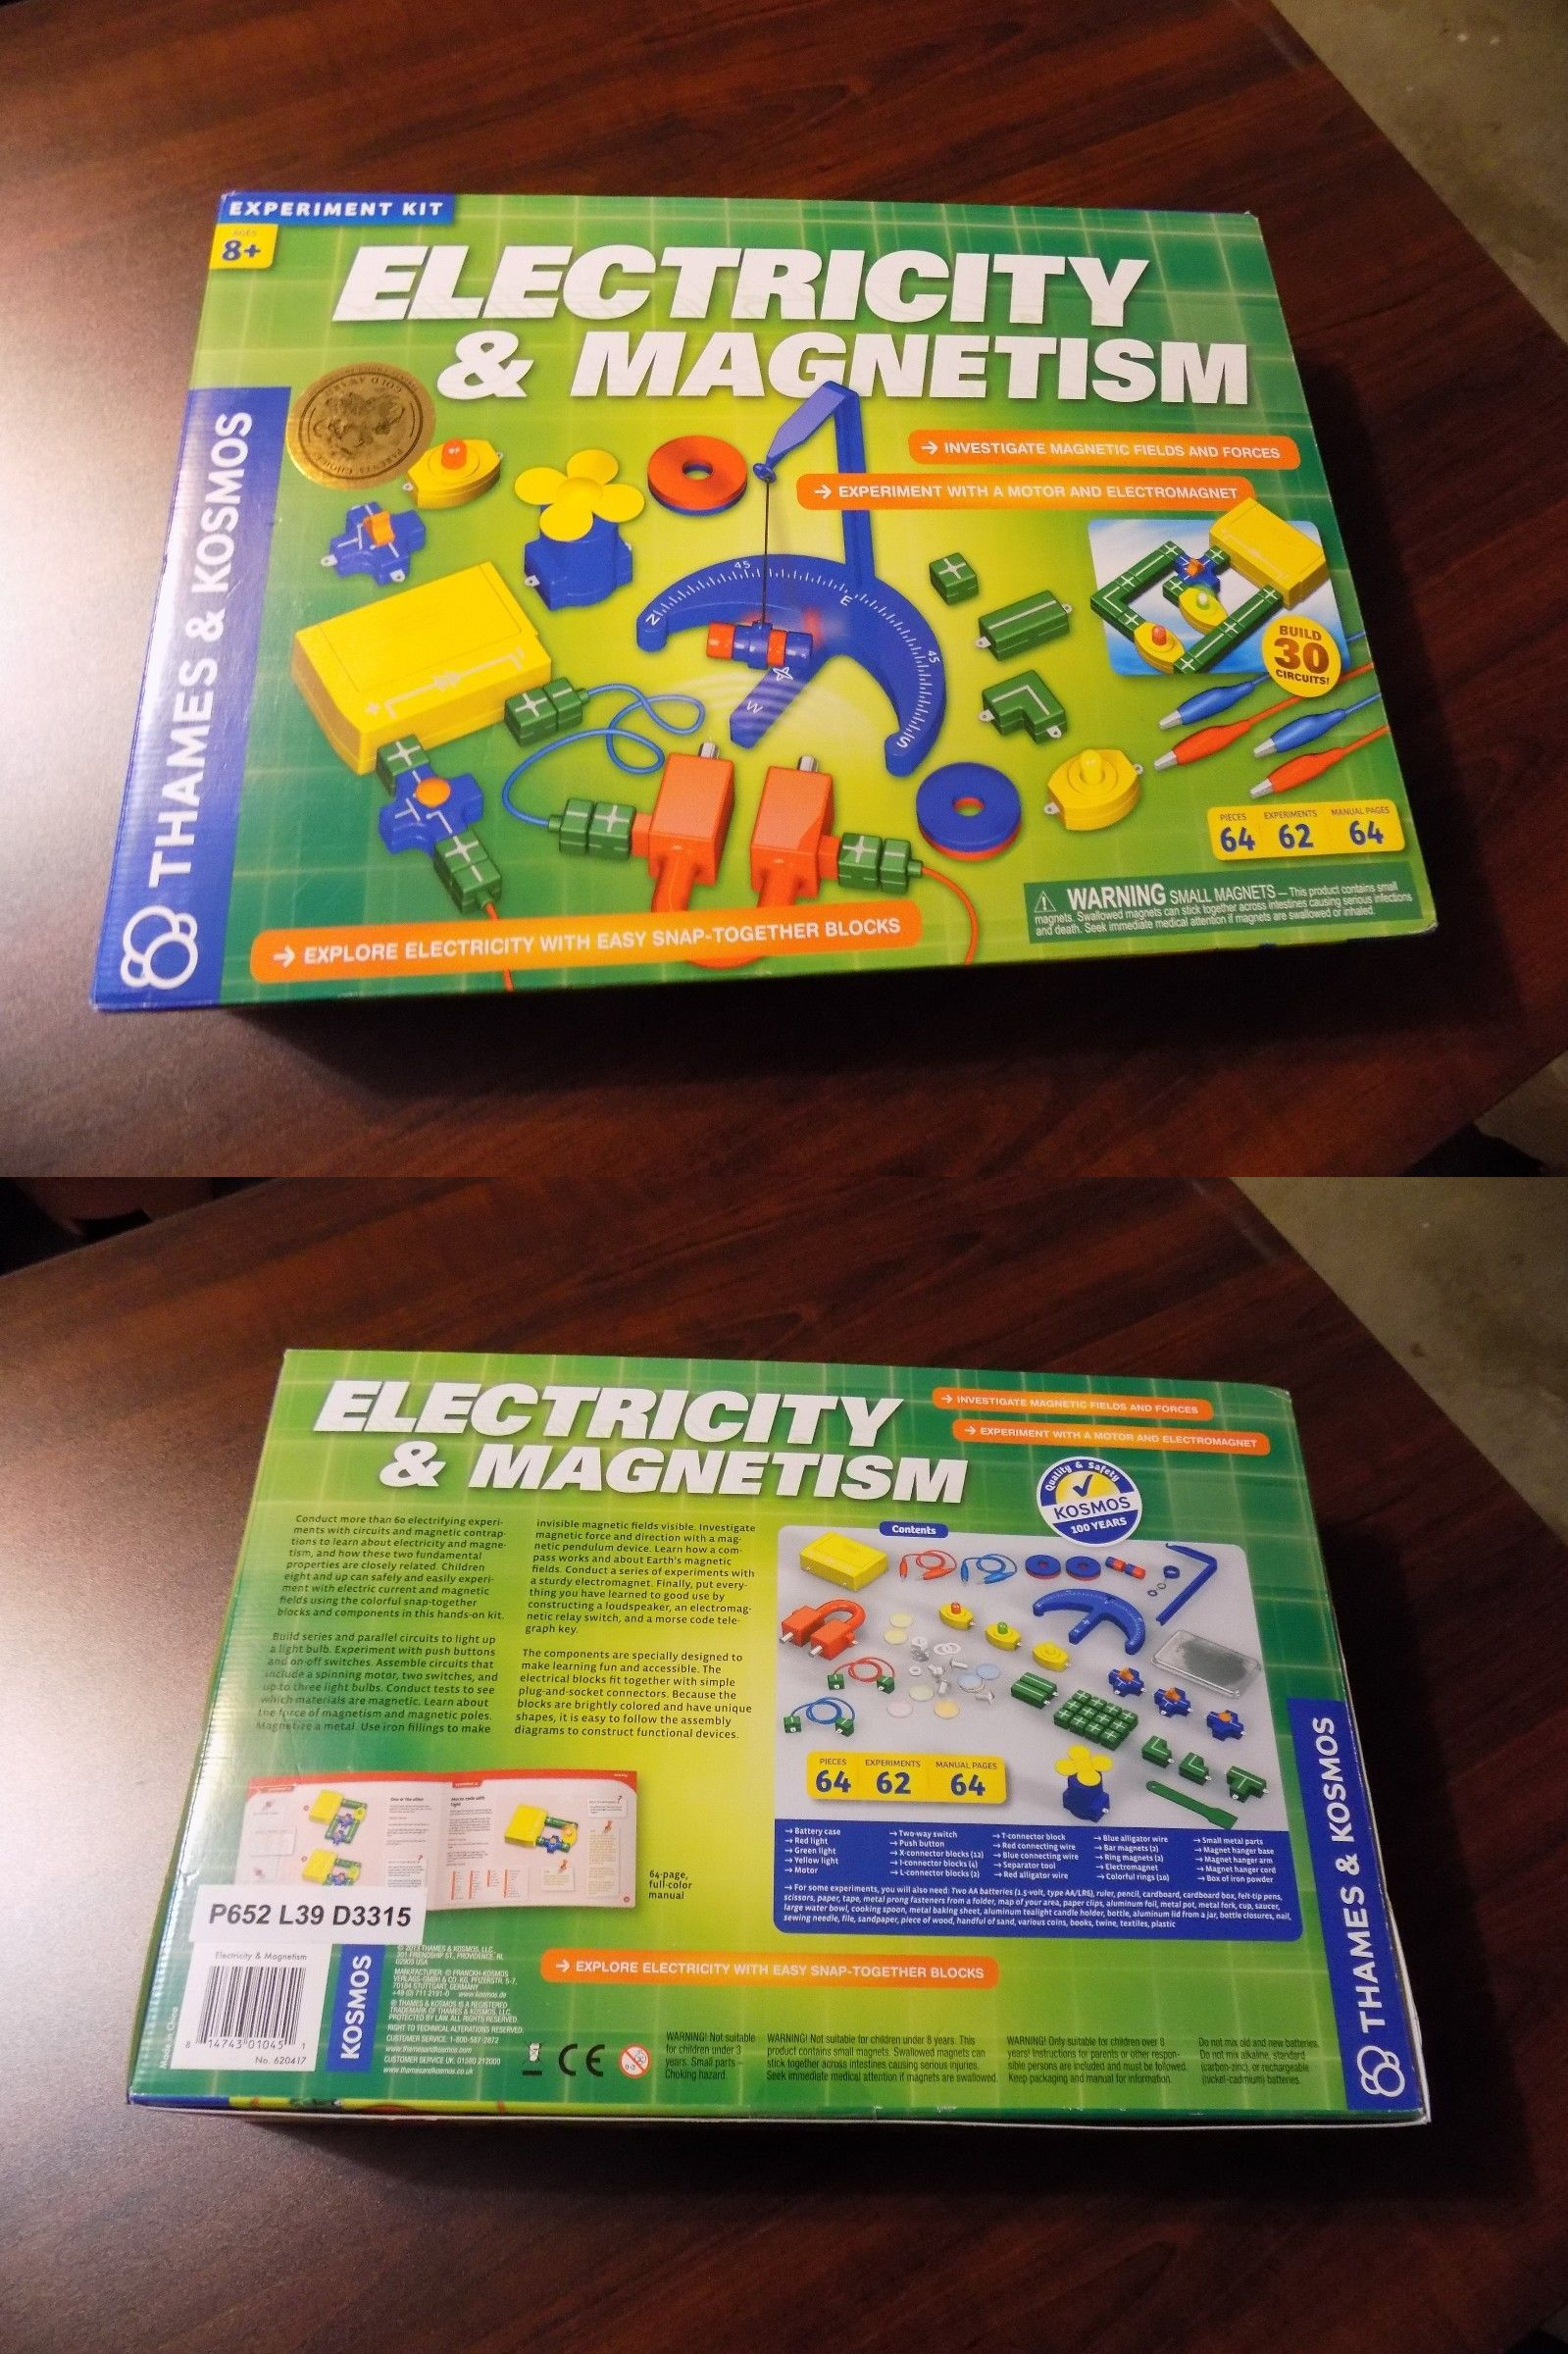 Elenco Scg125 Snap Circuits Green Alternative Energy Kit Learning Electronics And Electricity 158698 2 New Boxed Sets Of Jr Sc 100 Select Build Electronic Boards Buy It Now Only 3119 On E